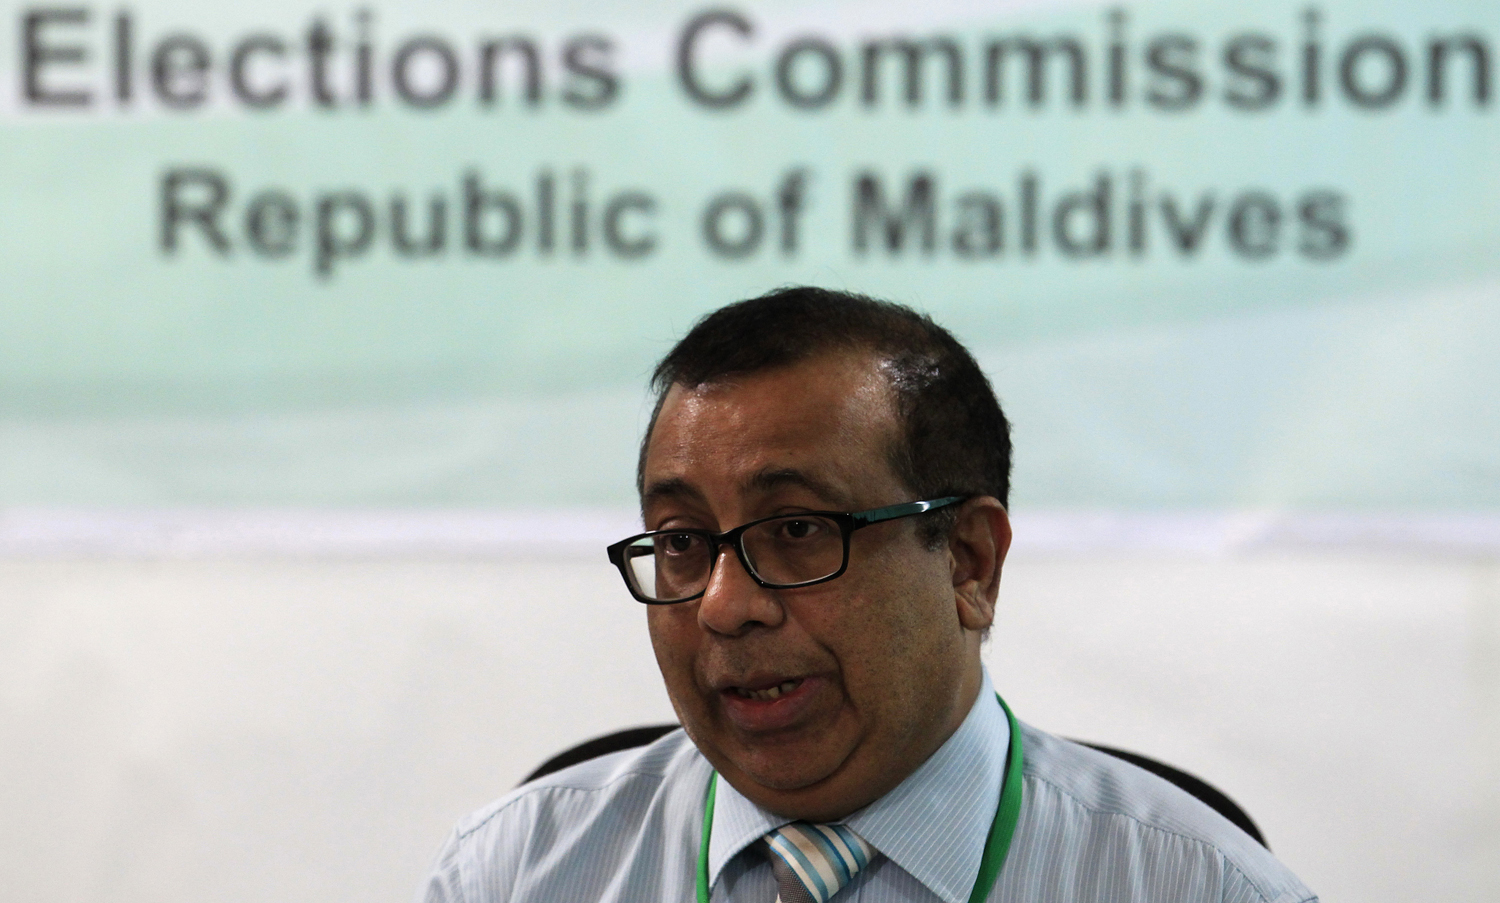 Maldives Election Commissioner Fuwad Thowfeek speaks during a news conference in Male, October 18, 2013.